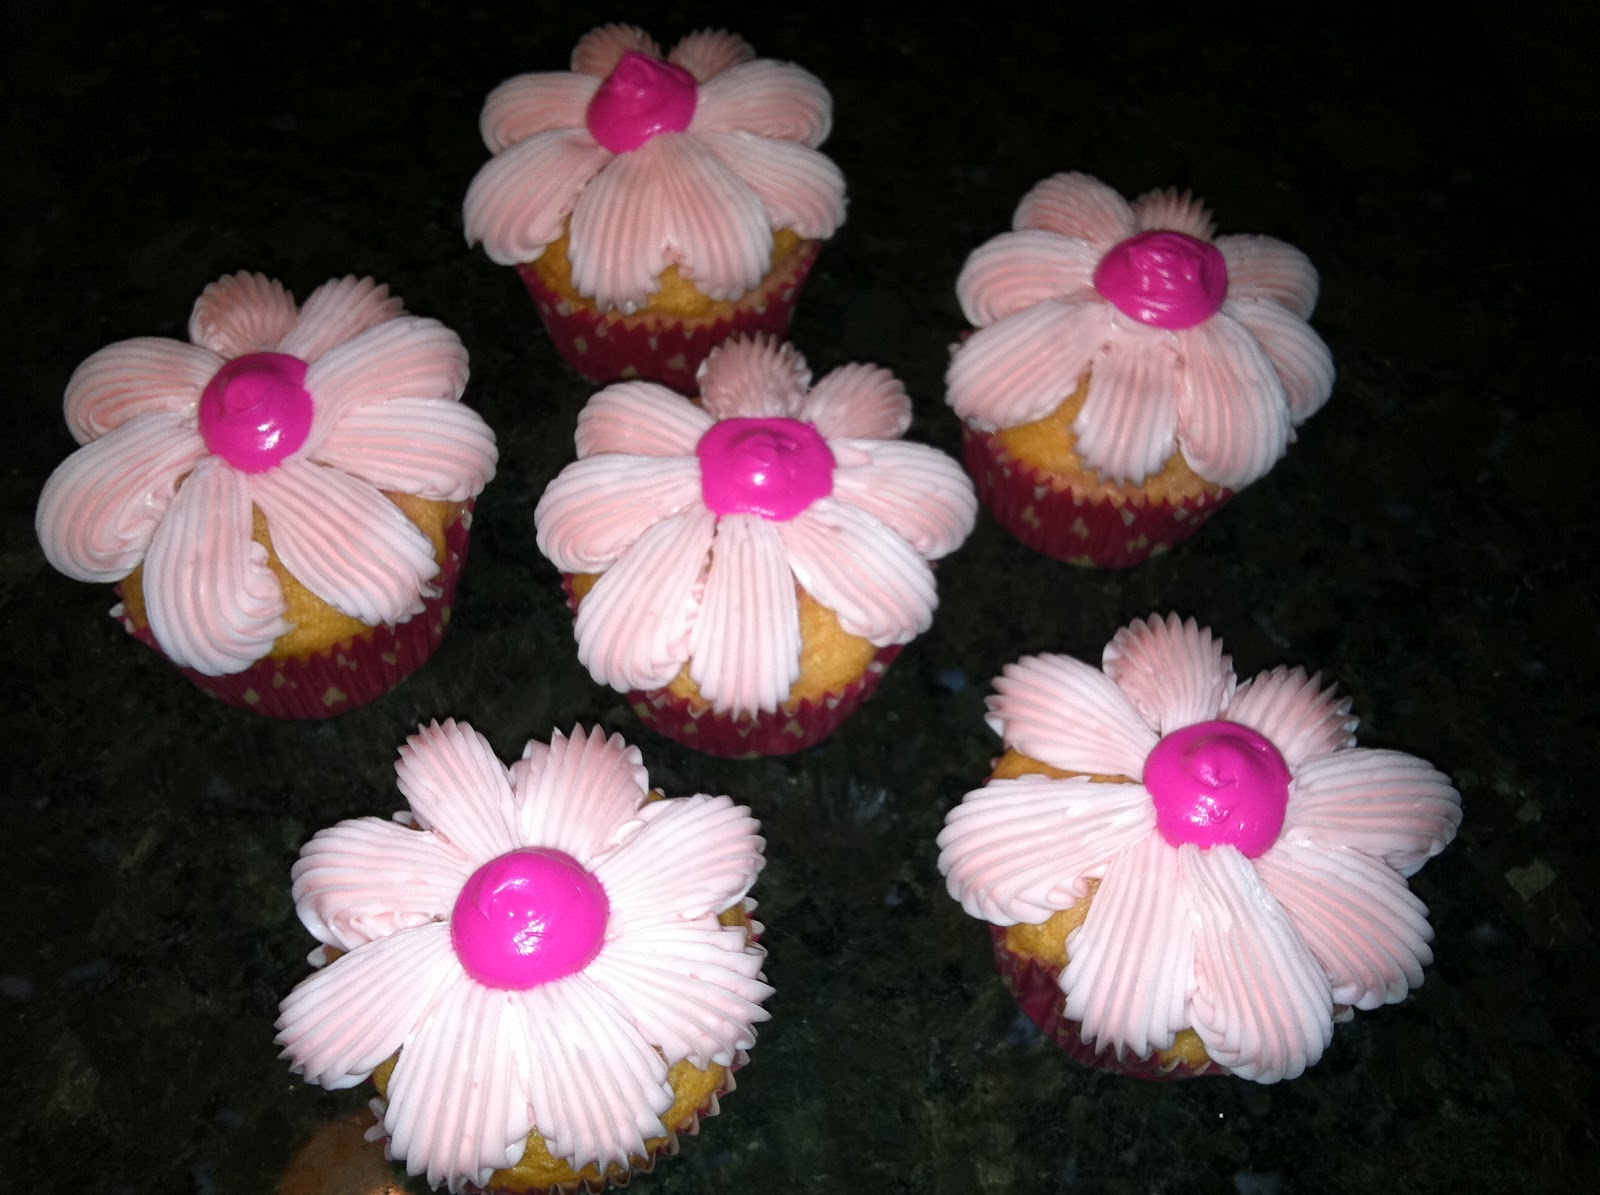 The Iced Queen Star Tip Flower Cupcakes